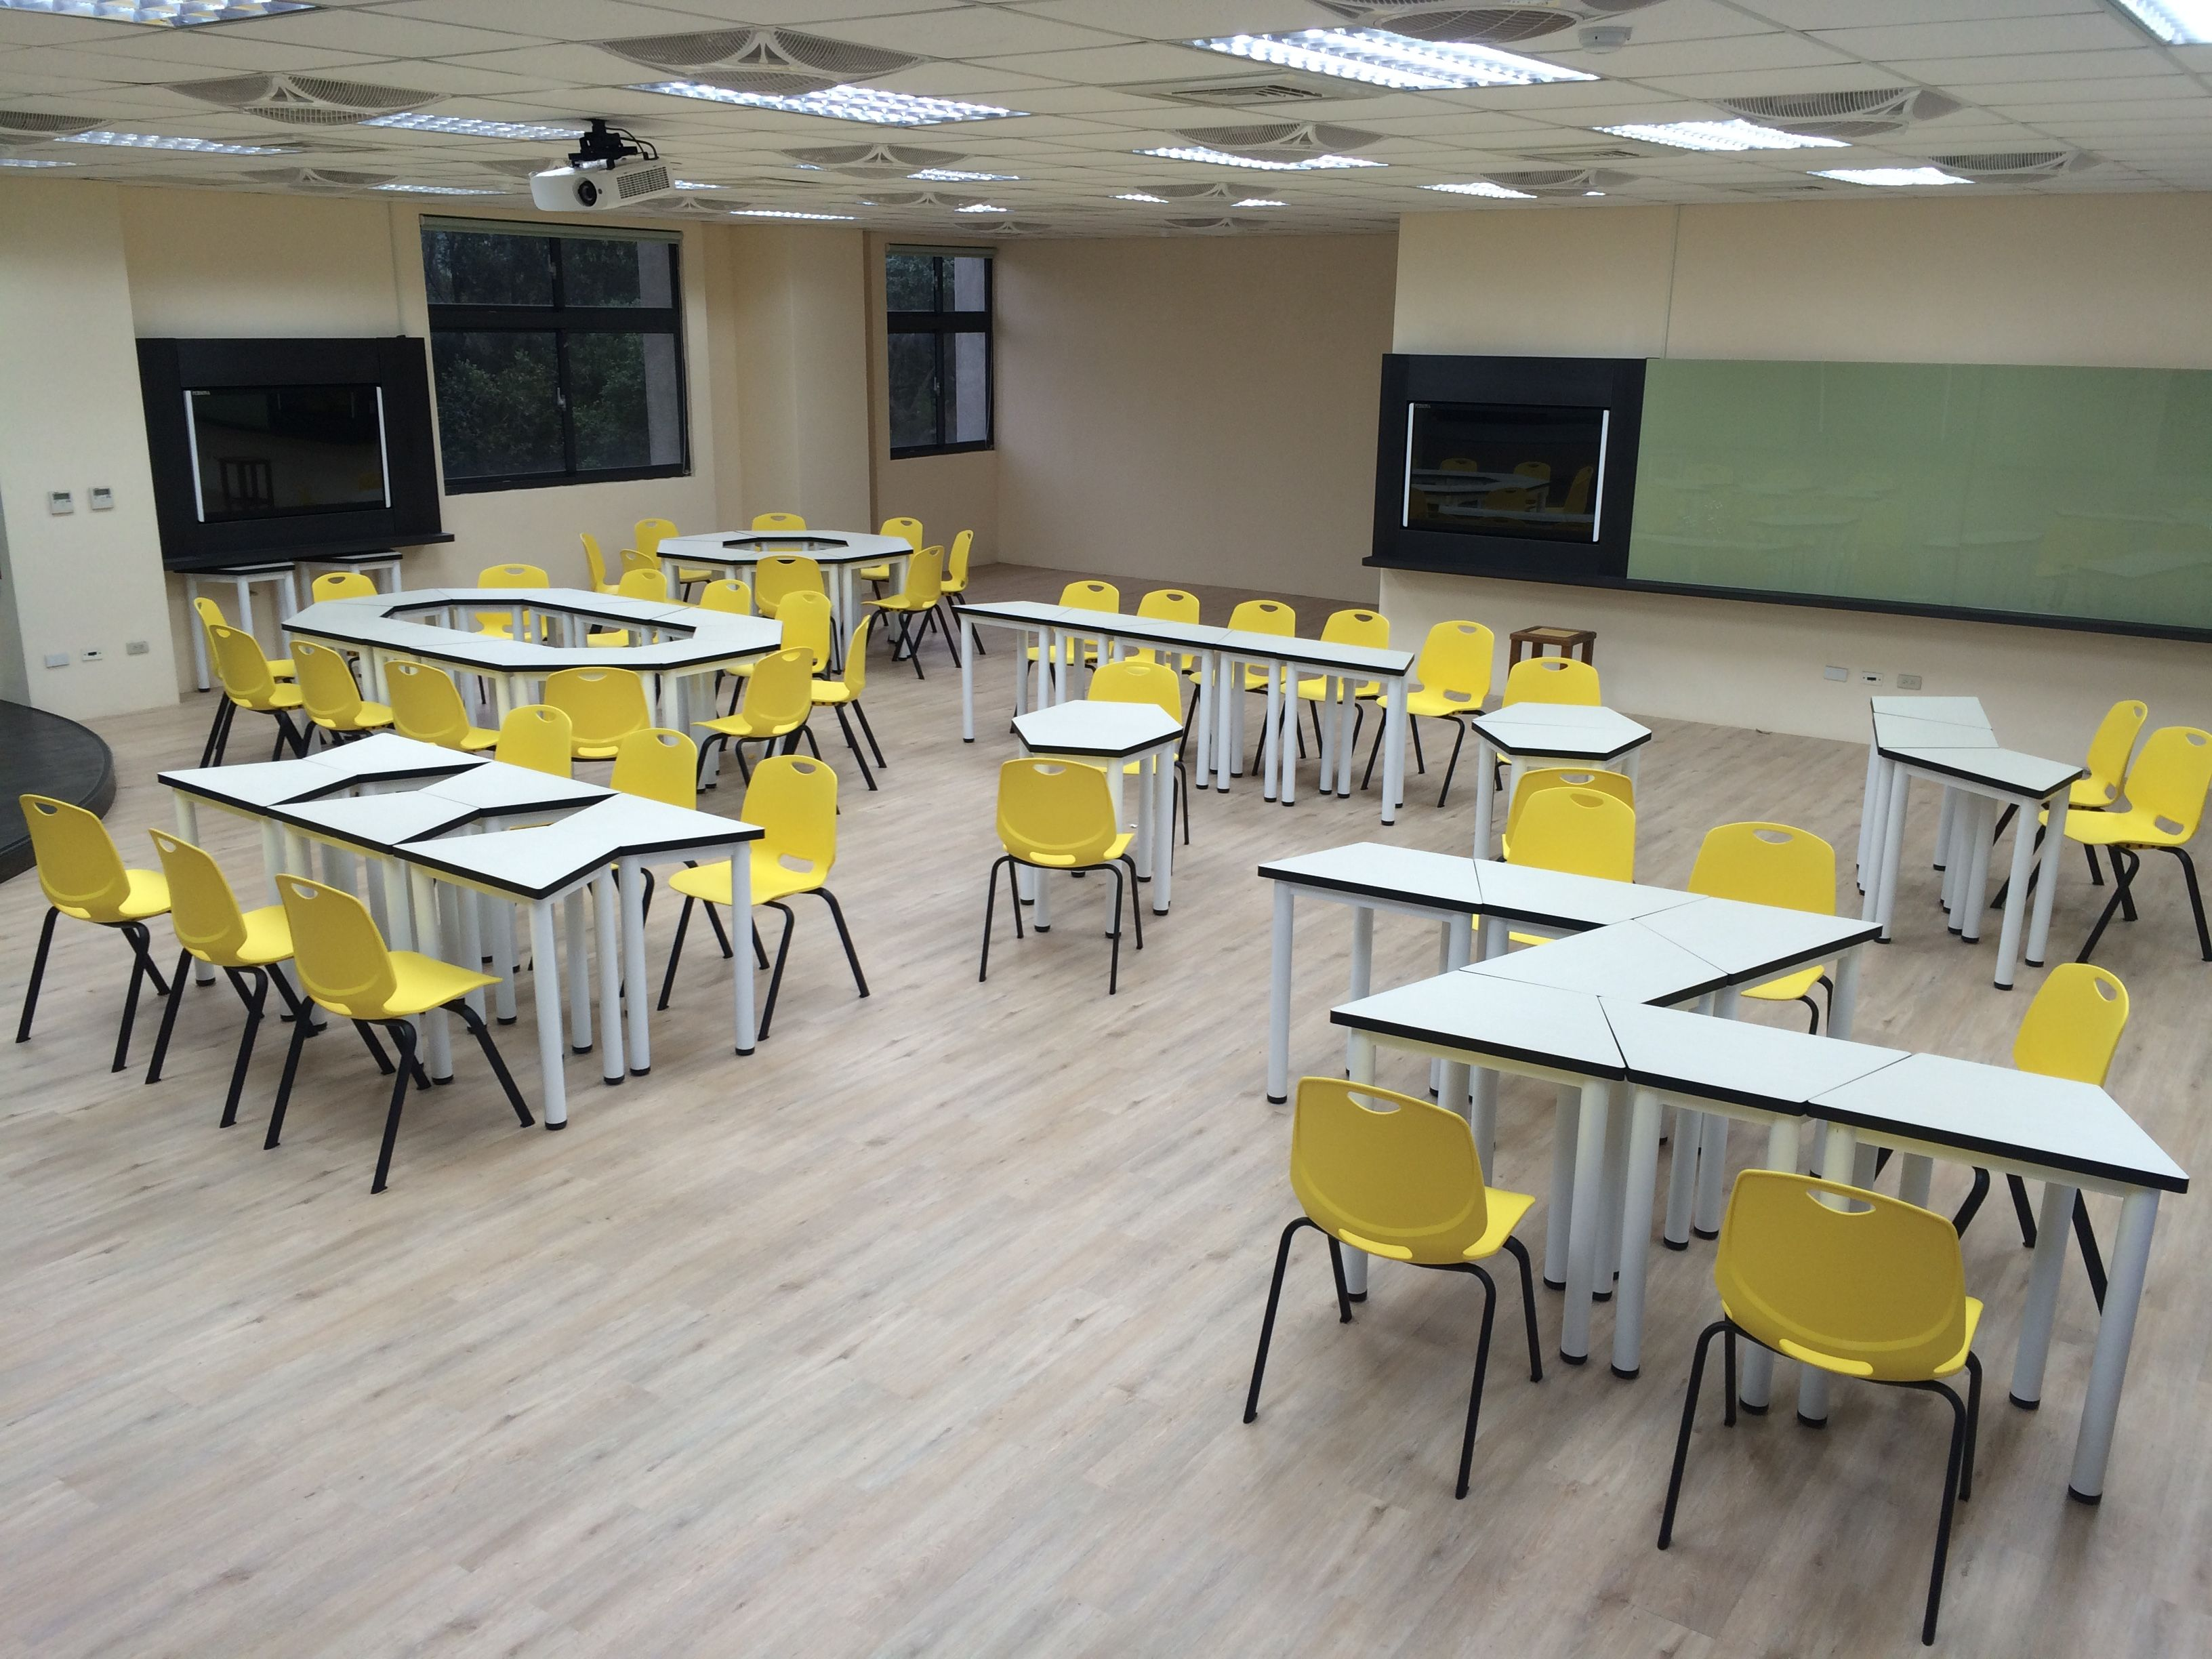 Modular Seating Arrangement Classroom ~ Pin by 鎮穎 徐 on trapezoid student tables modular seminar